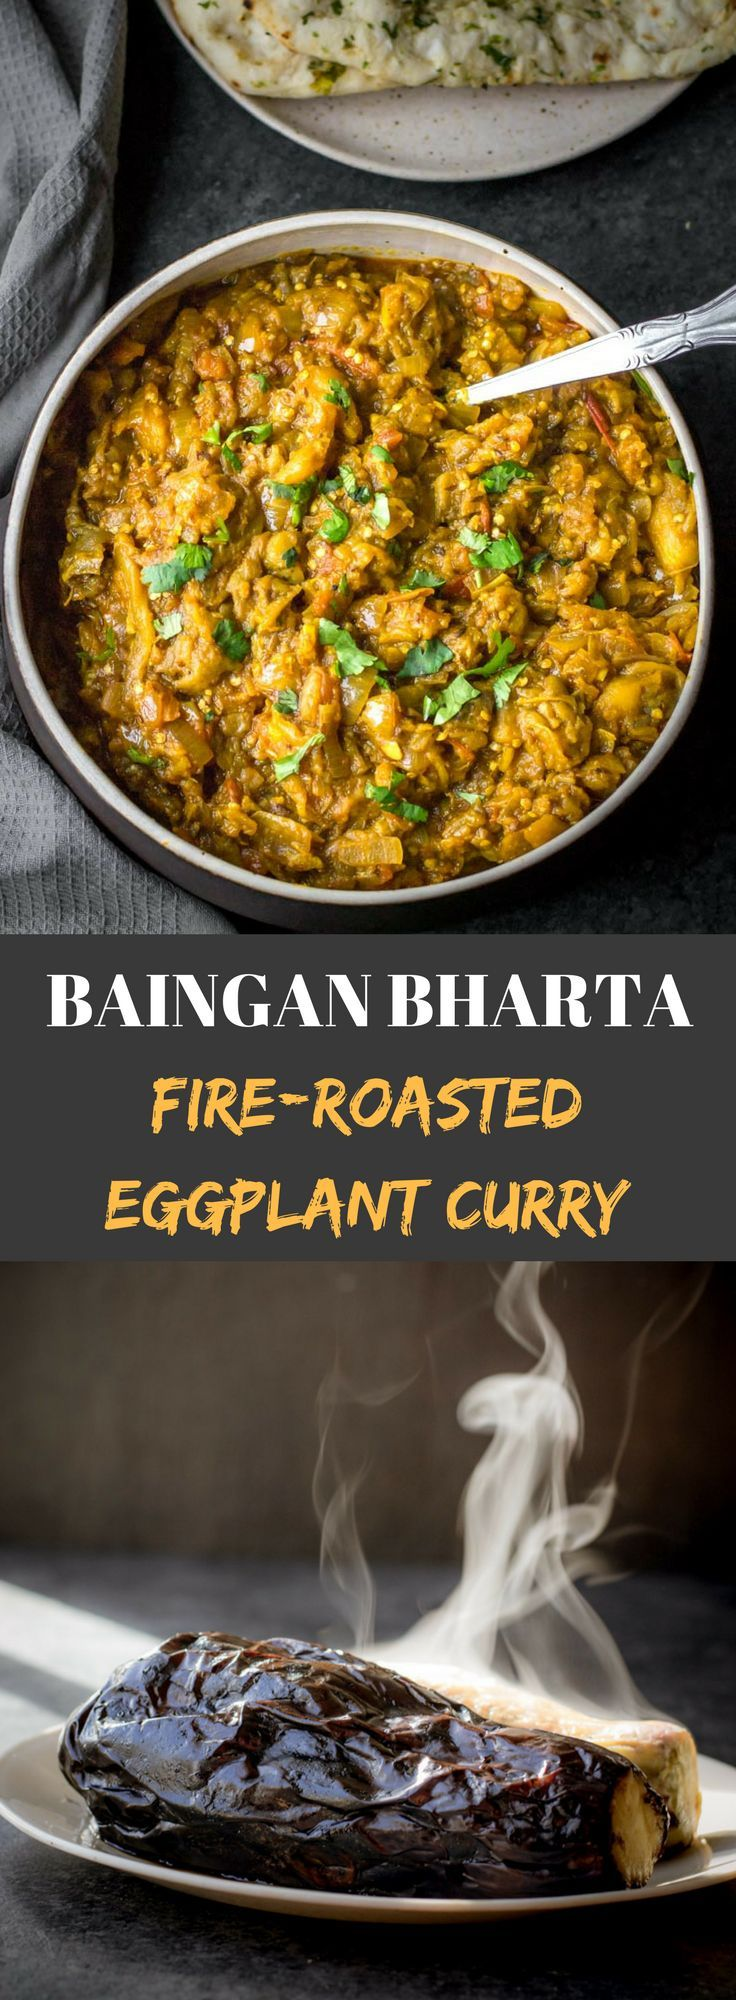 Indian baingan bharta recipe - Punjabi Baingan bharta is a smoky-flavored curry made by mashing fire-roasted eggplants and cooking them in a rich onion-tomato gravy. A popular North Indian dish, Baingan bharta pairs well with roti or rice. Learn how to roast eggplants (baingan) in the oven or stove top to make authentic Indian-style baingan bharta.